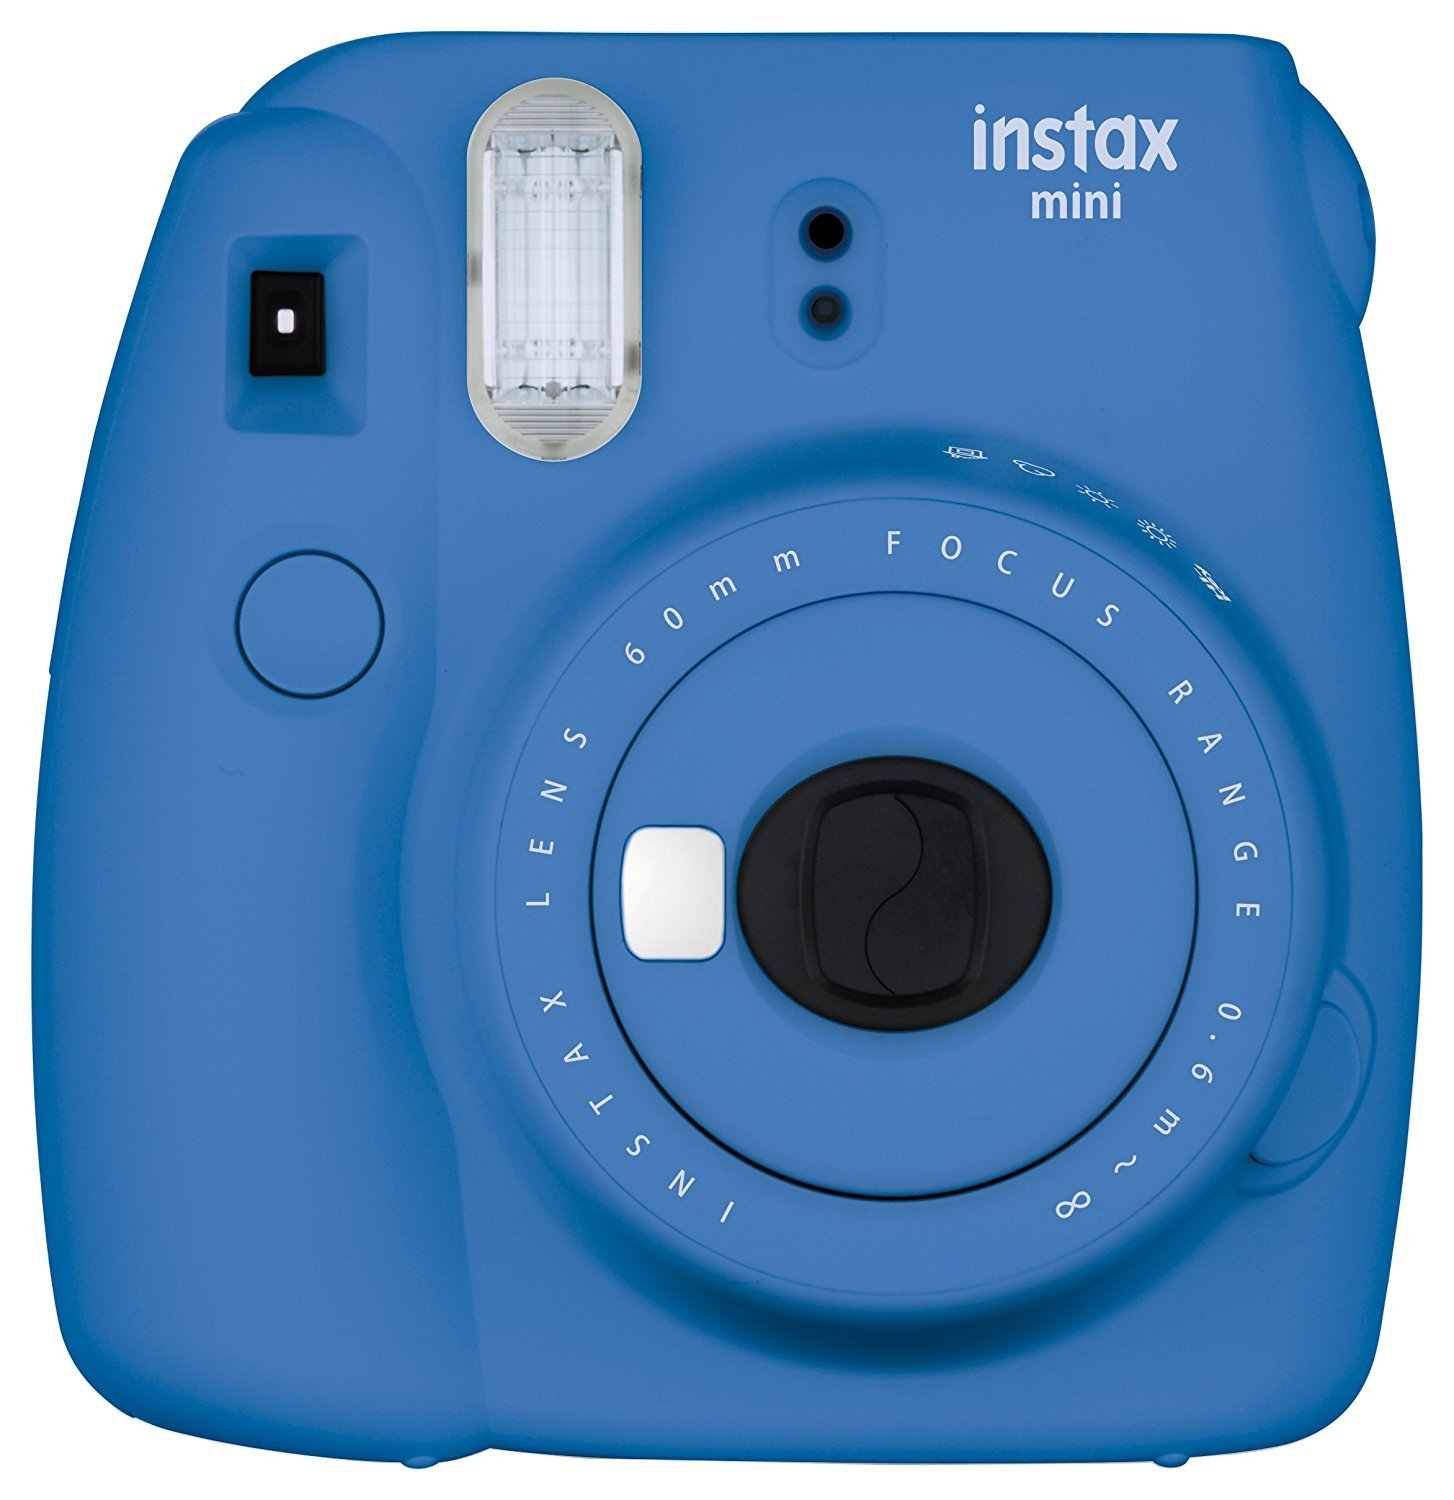 FujiFilm Instax Mini 9 Instant Camera + Fuji Instax Film (40 Sheets) + Accessories Bundle - Carrying Case, Color Filters, Photo Album, Stickers, Selfie Lens + MORE (Cobalt Blue)